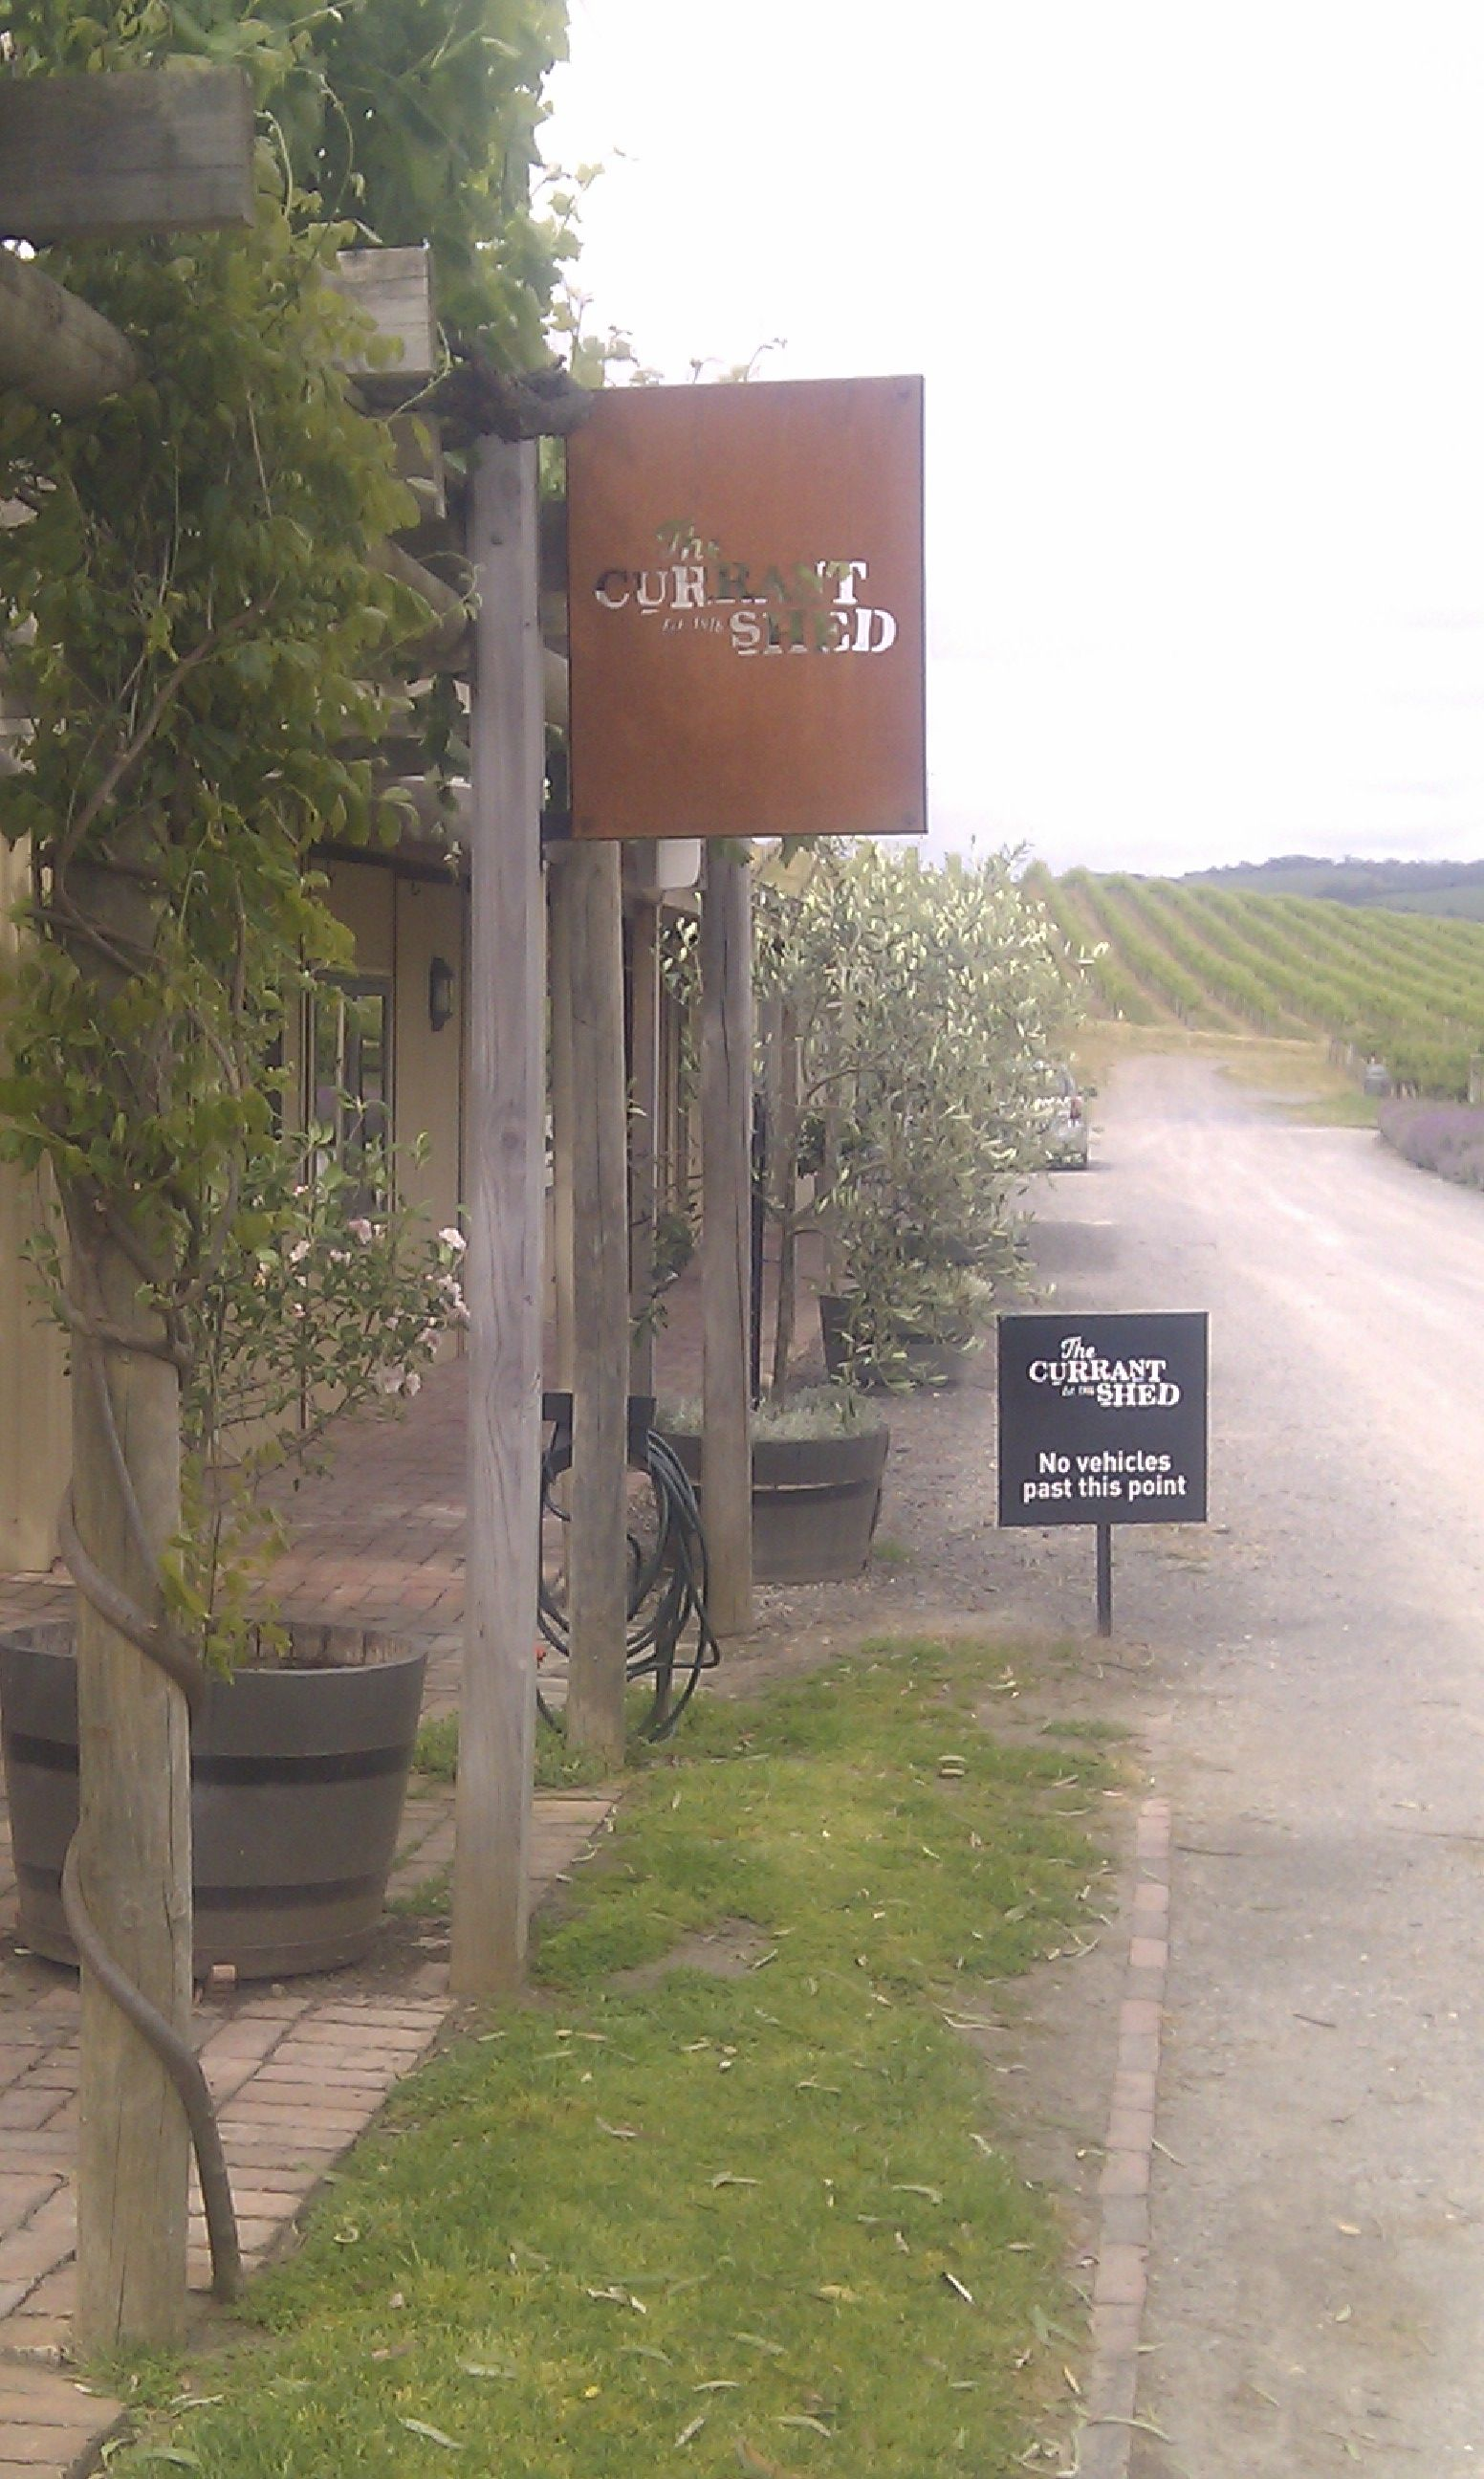 the currant shed restaurant in the vineyards in mclaren vale